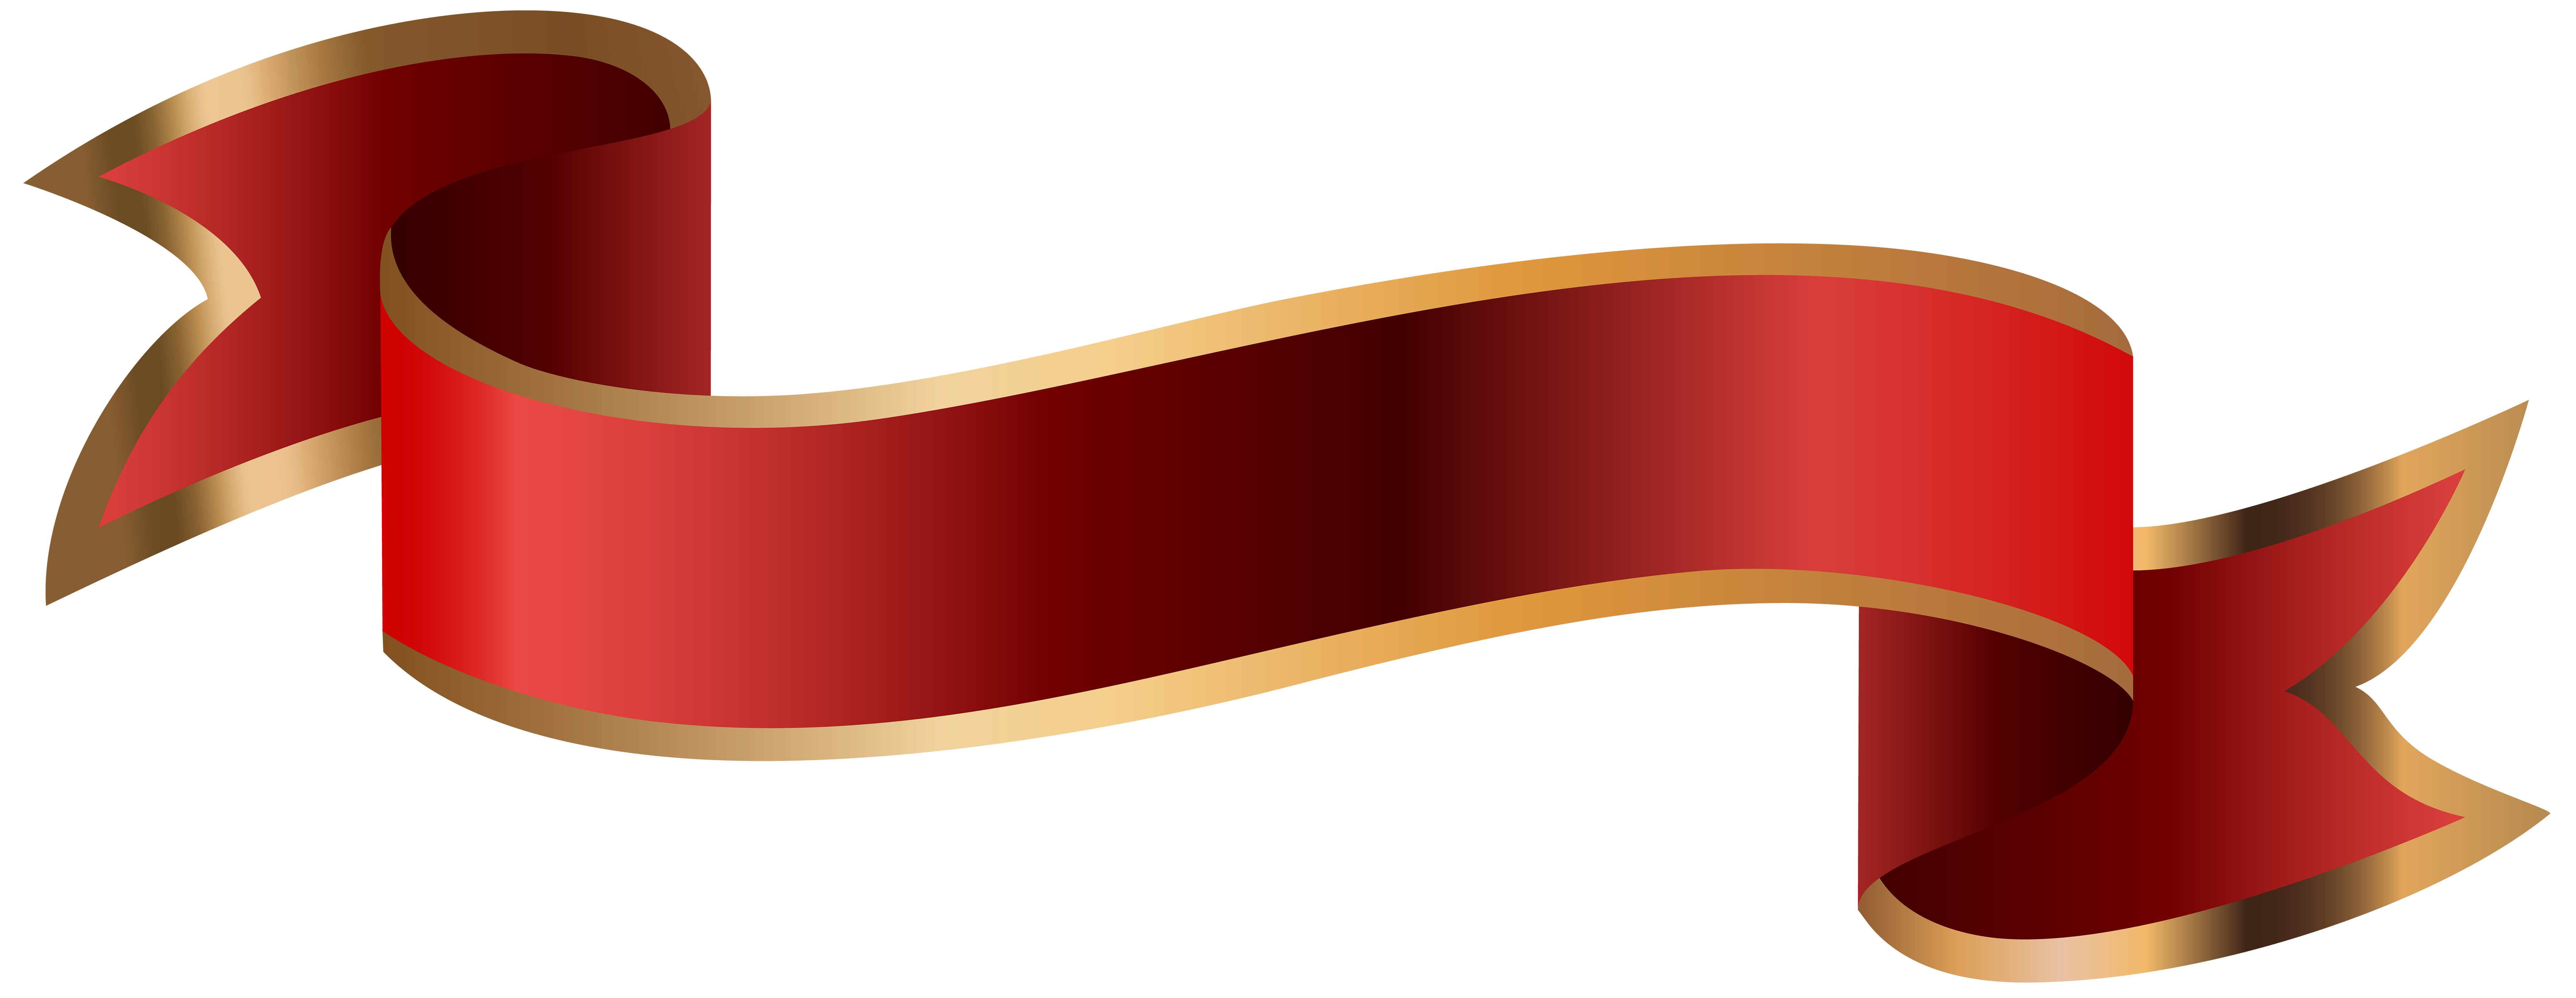 Banner clip. Red png art image